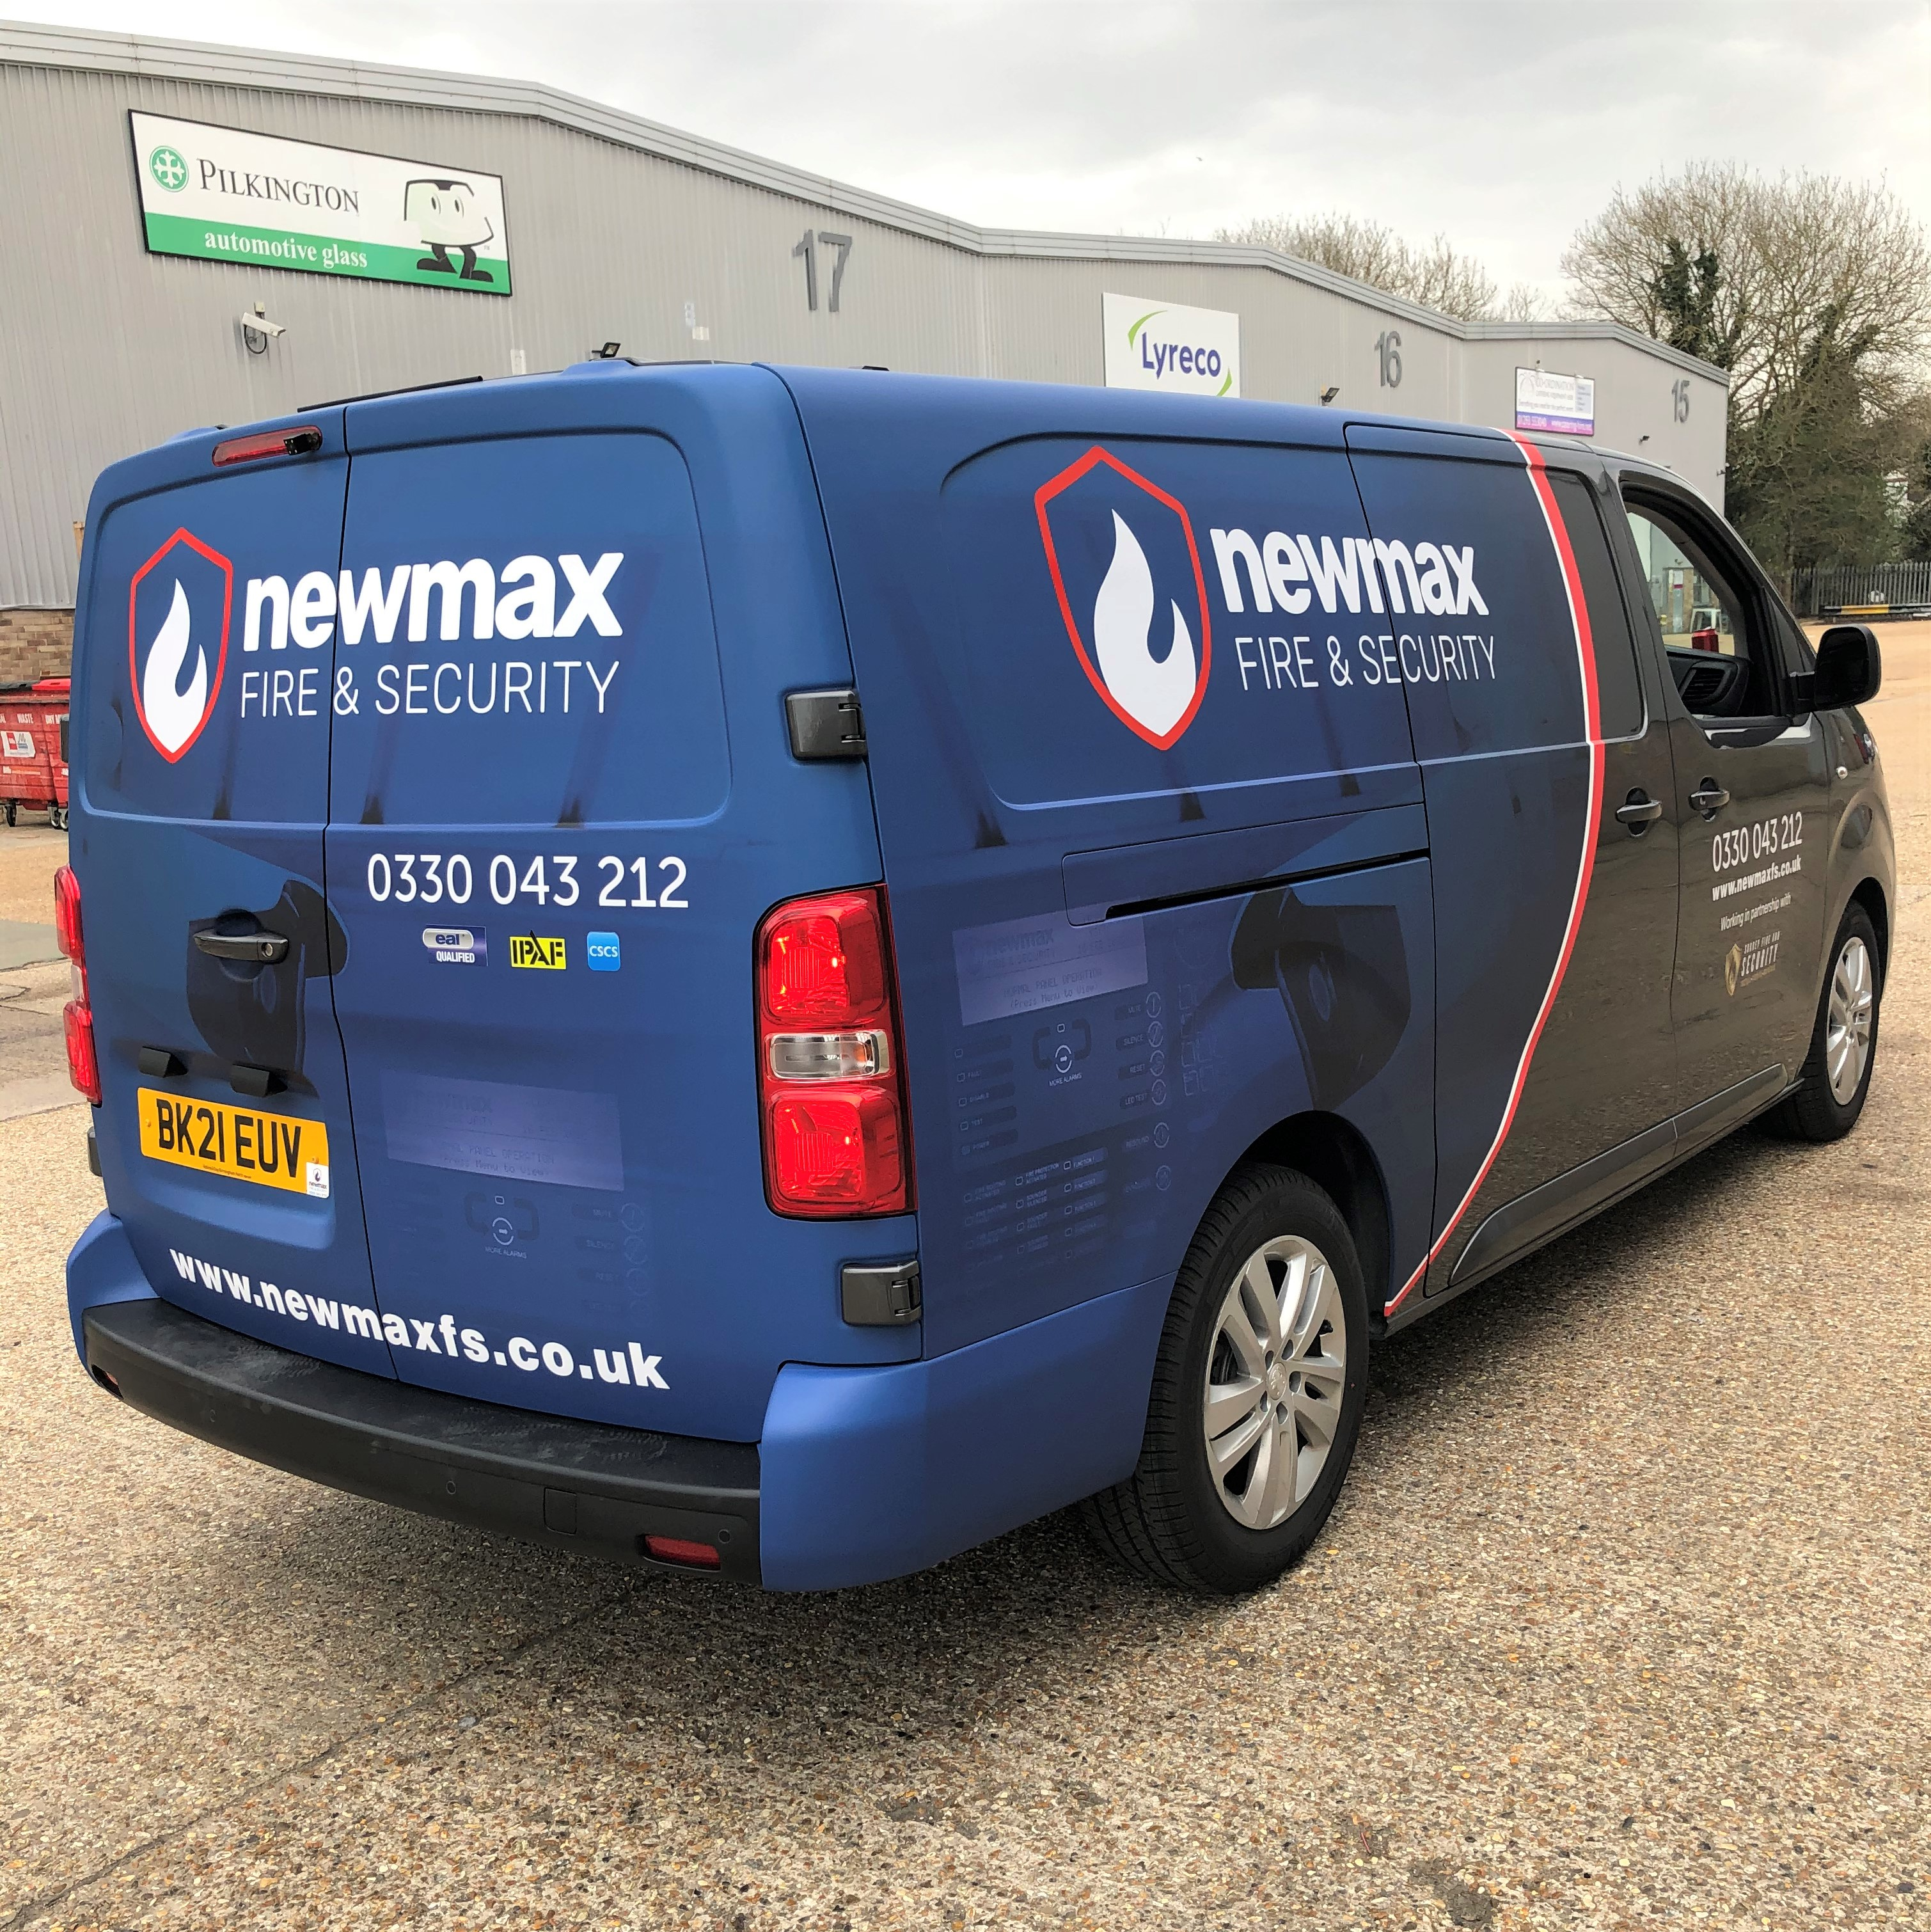 NewMax Fire & Security